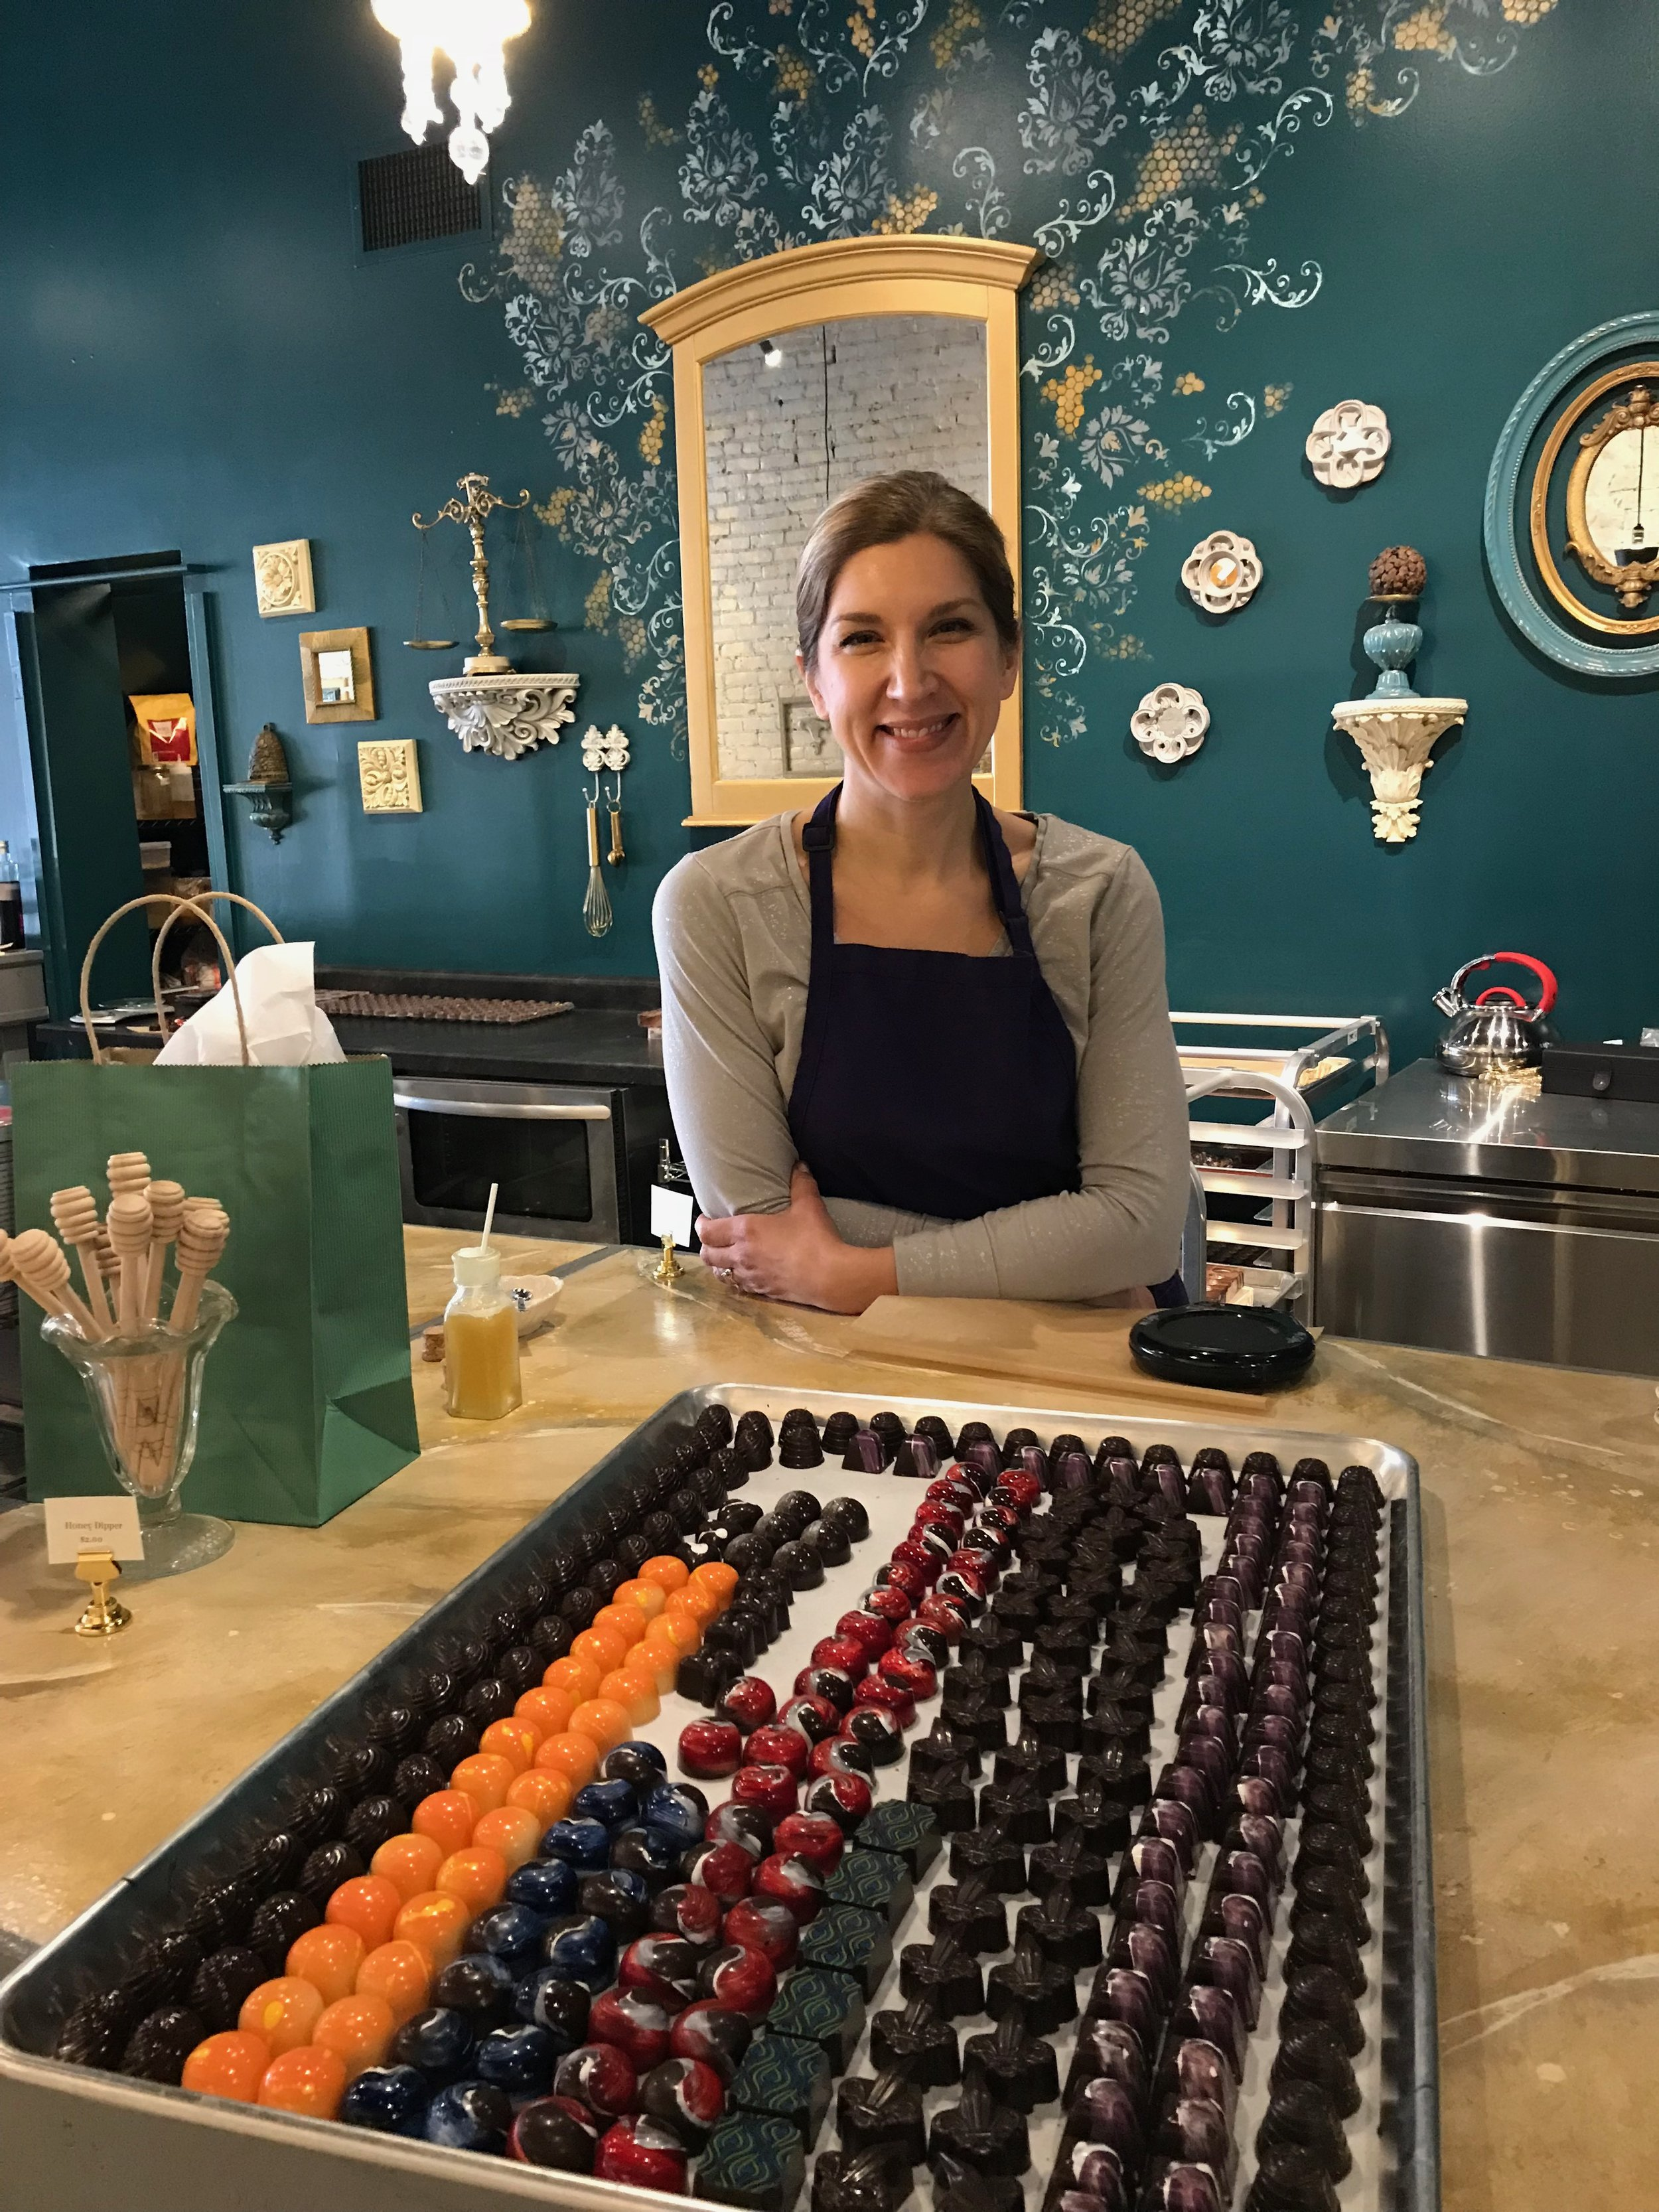 Tina in her beautiful dream shop, Chocolat Abeille.